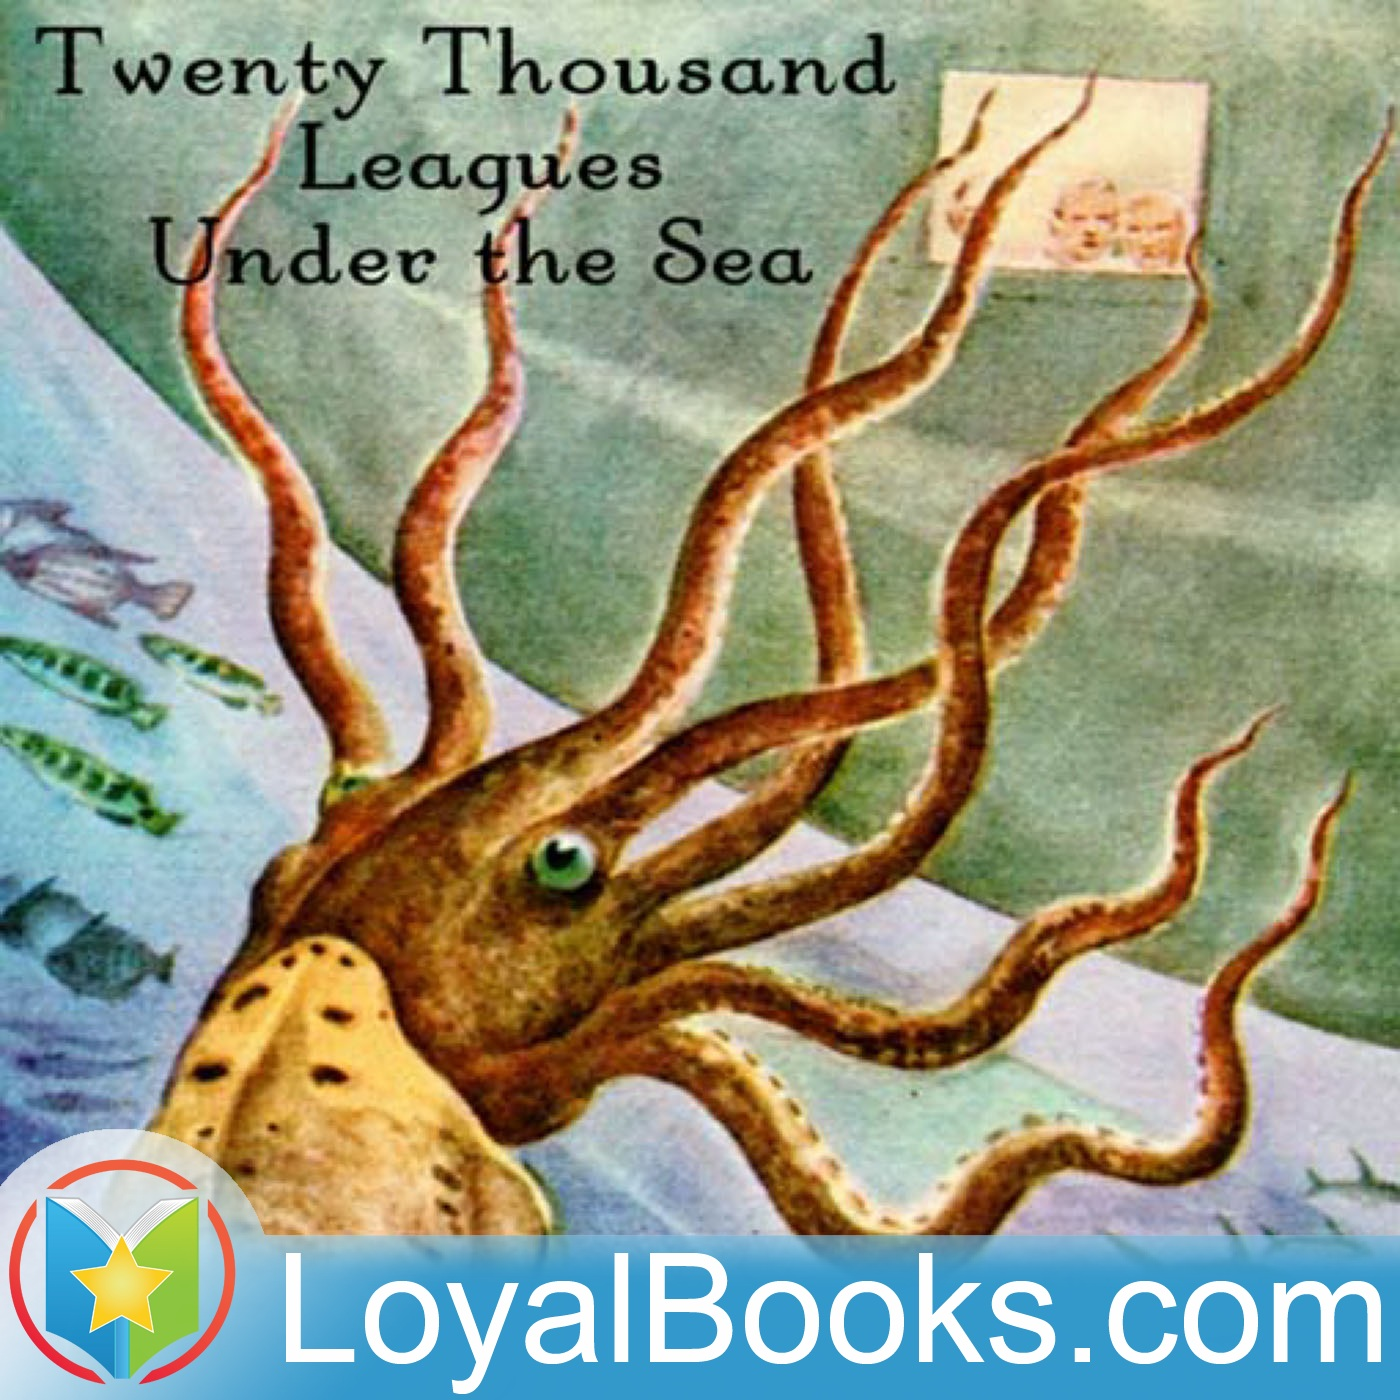 <![CDATA[Twenty Thousand Leagues Under the Sea by Jules Verne]]>